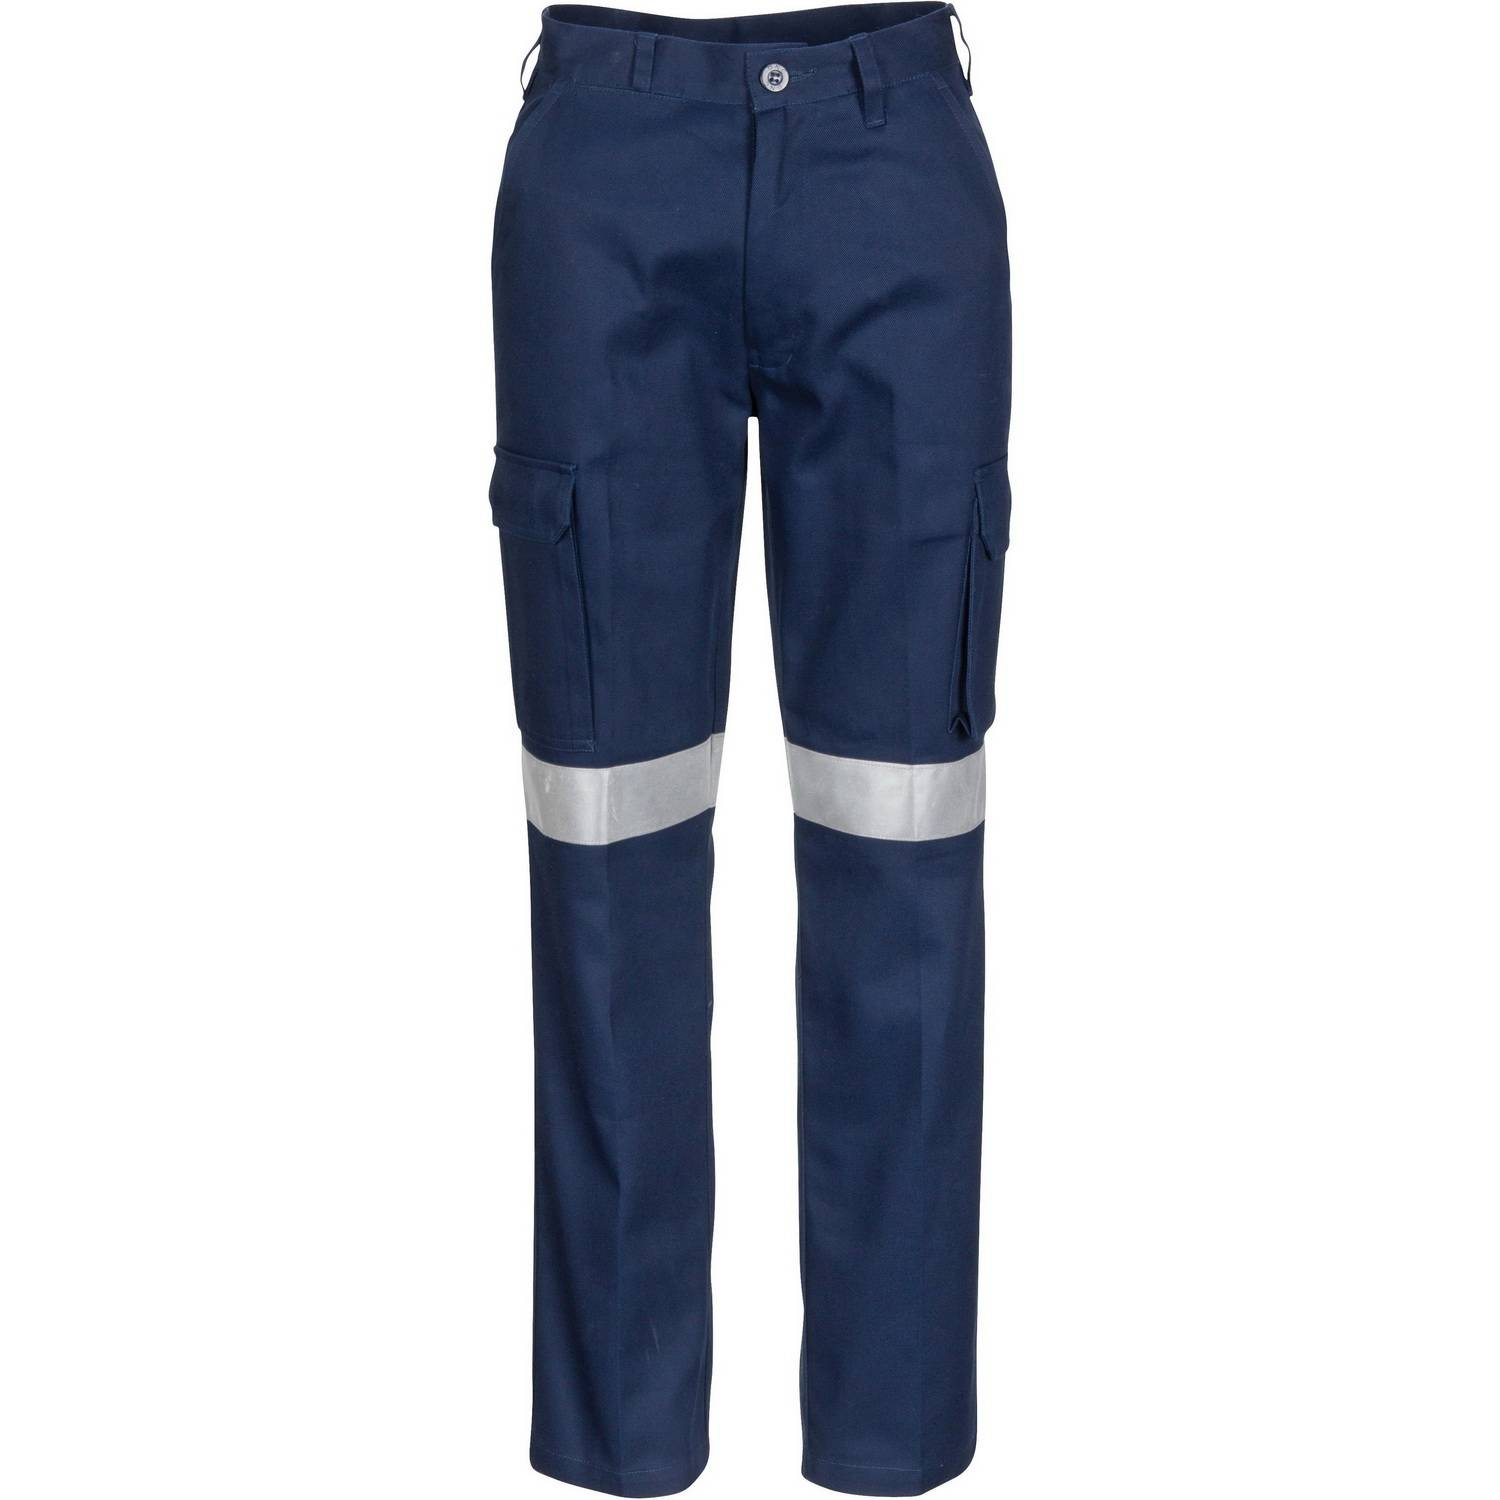 Blue reflective safety pants with 3M reflective tap